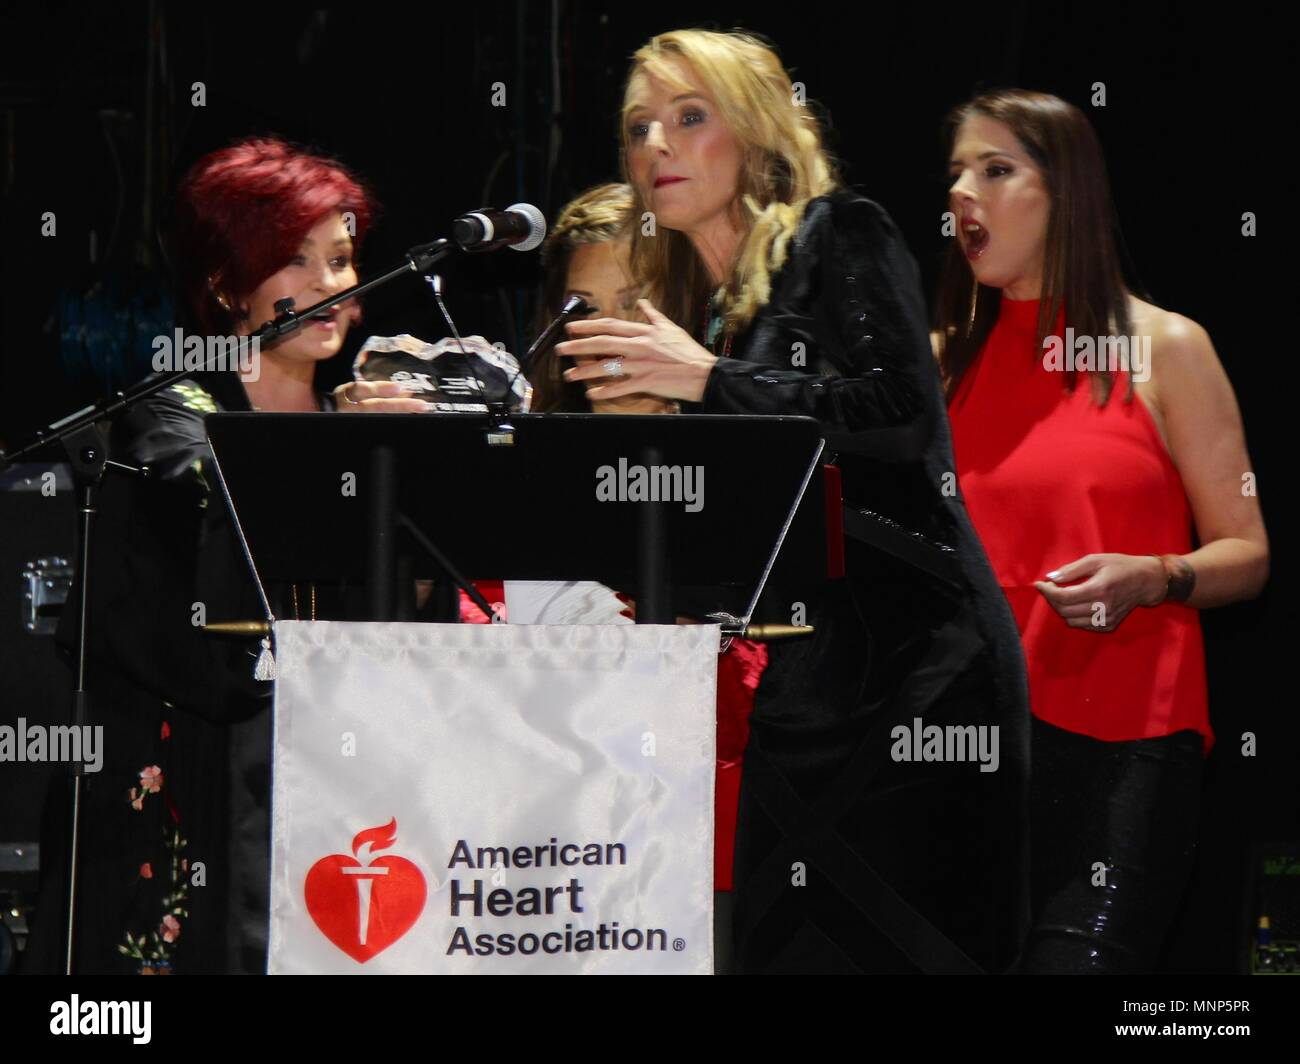 Hollywood, California, USA. 17th May, 2018. I15986CHW.The American Heart Association Presents The 3rd Annual ROCK THE RED Music Benefit .Avalon Hollywood, Los Angeles, CA USA.05/17/2018.SHARON OSBOURNE, CHYNNA PHILLIPS AND WENDY WILSON . © Clinton H.Wallace/Photomundo International/ Photos Inc Credit: Clinton Wallace/Globe Photos/ZUMA Wire/Alamy Live News - Stock Image